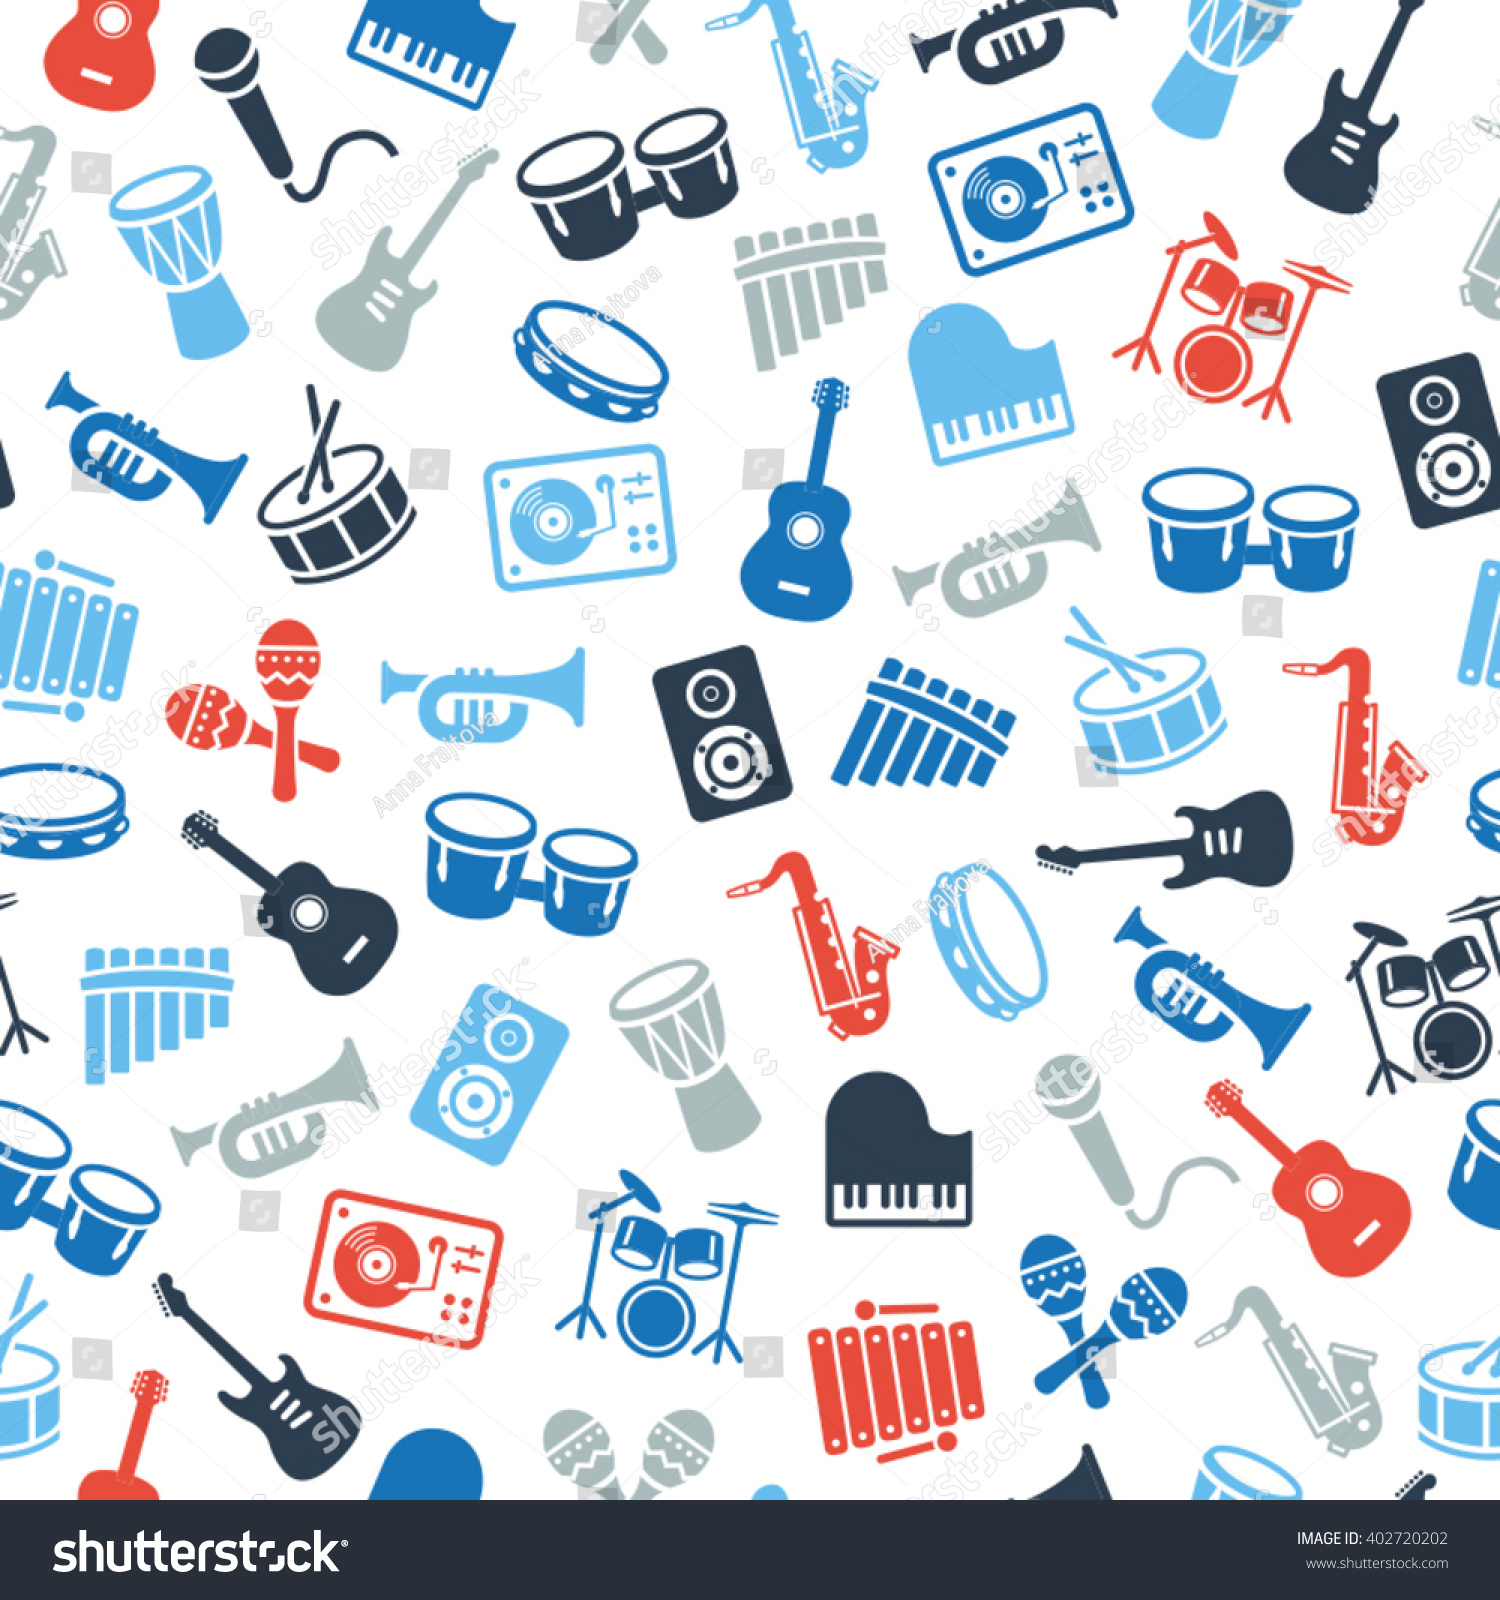 Great Wallpaper Music Pattern - stock-vector-musical-instruments-icons-wallpaper-seamless-pattern-can-be-used-on-print-materials-or-on-402720202  Pic_129543.jpg